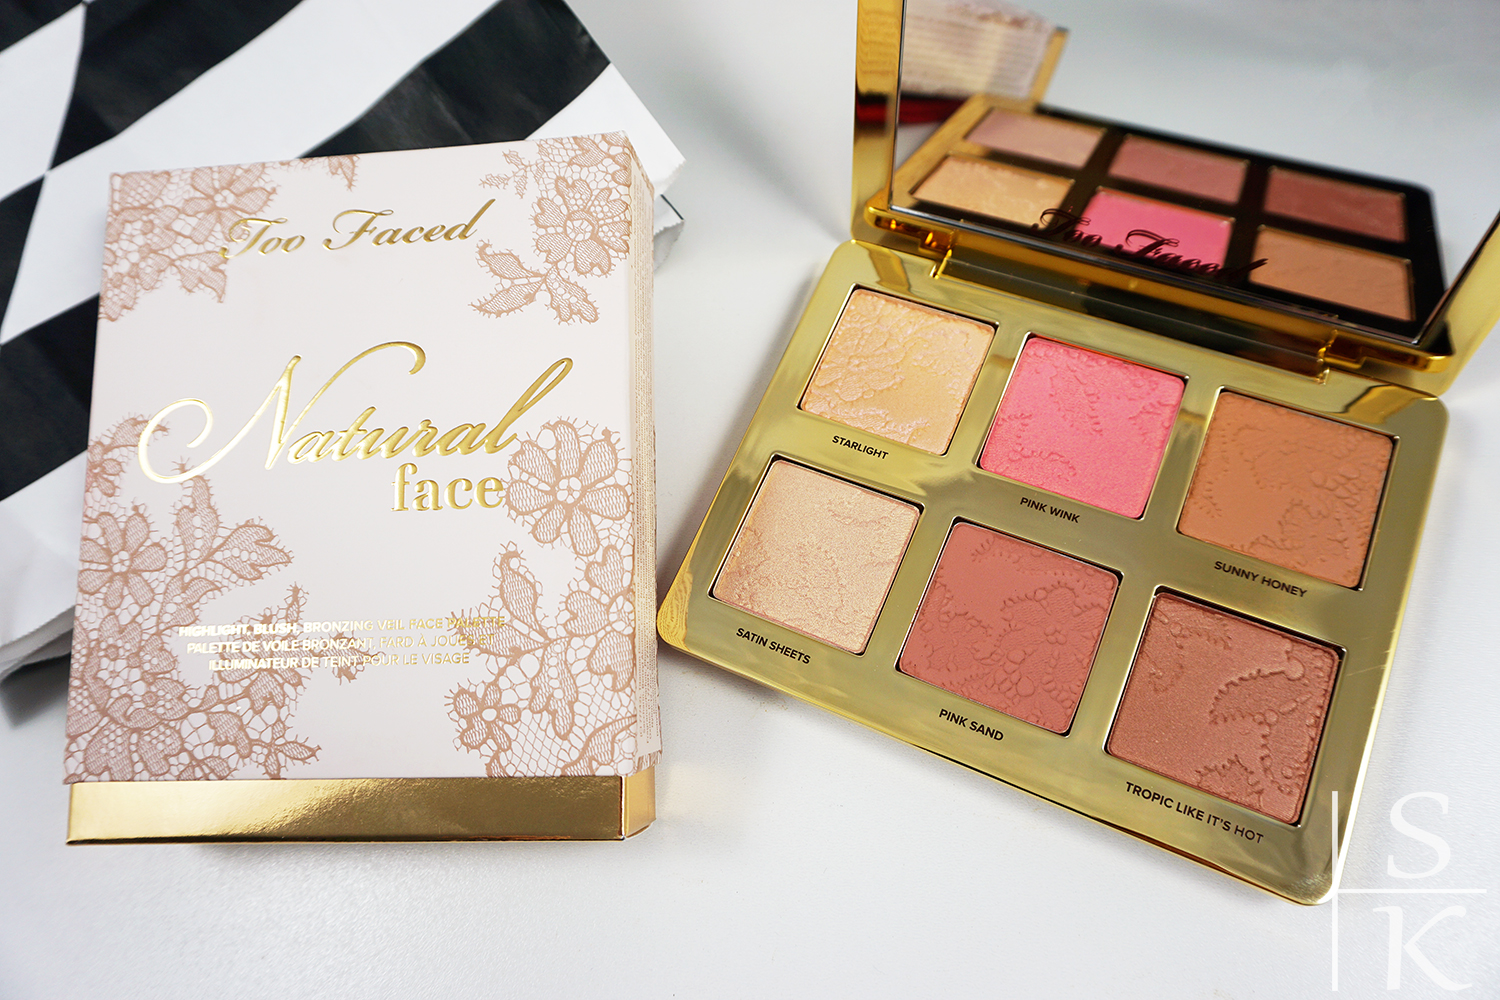 Beauty-Haul aus Italien Horizont-Blog Too Faced Natural Face Palette